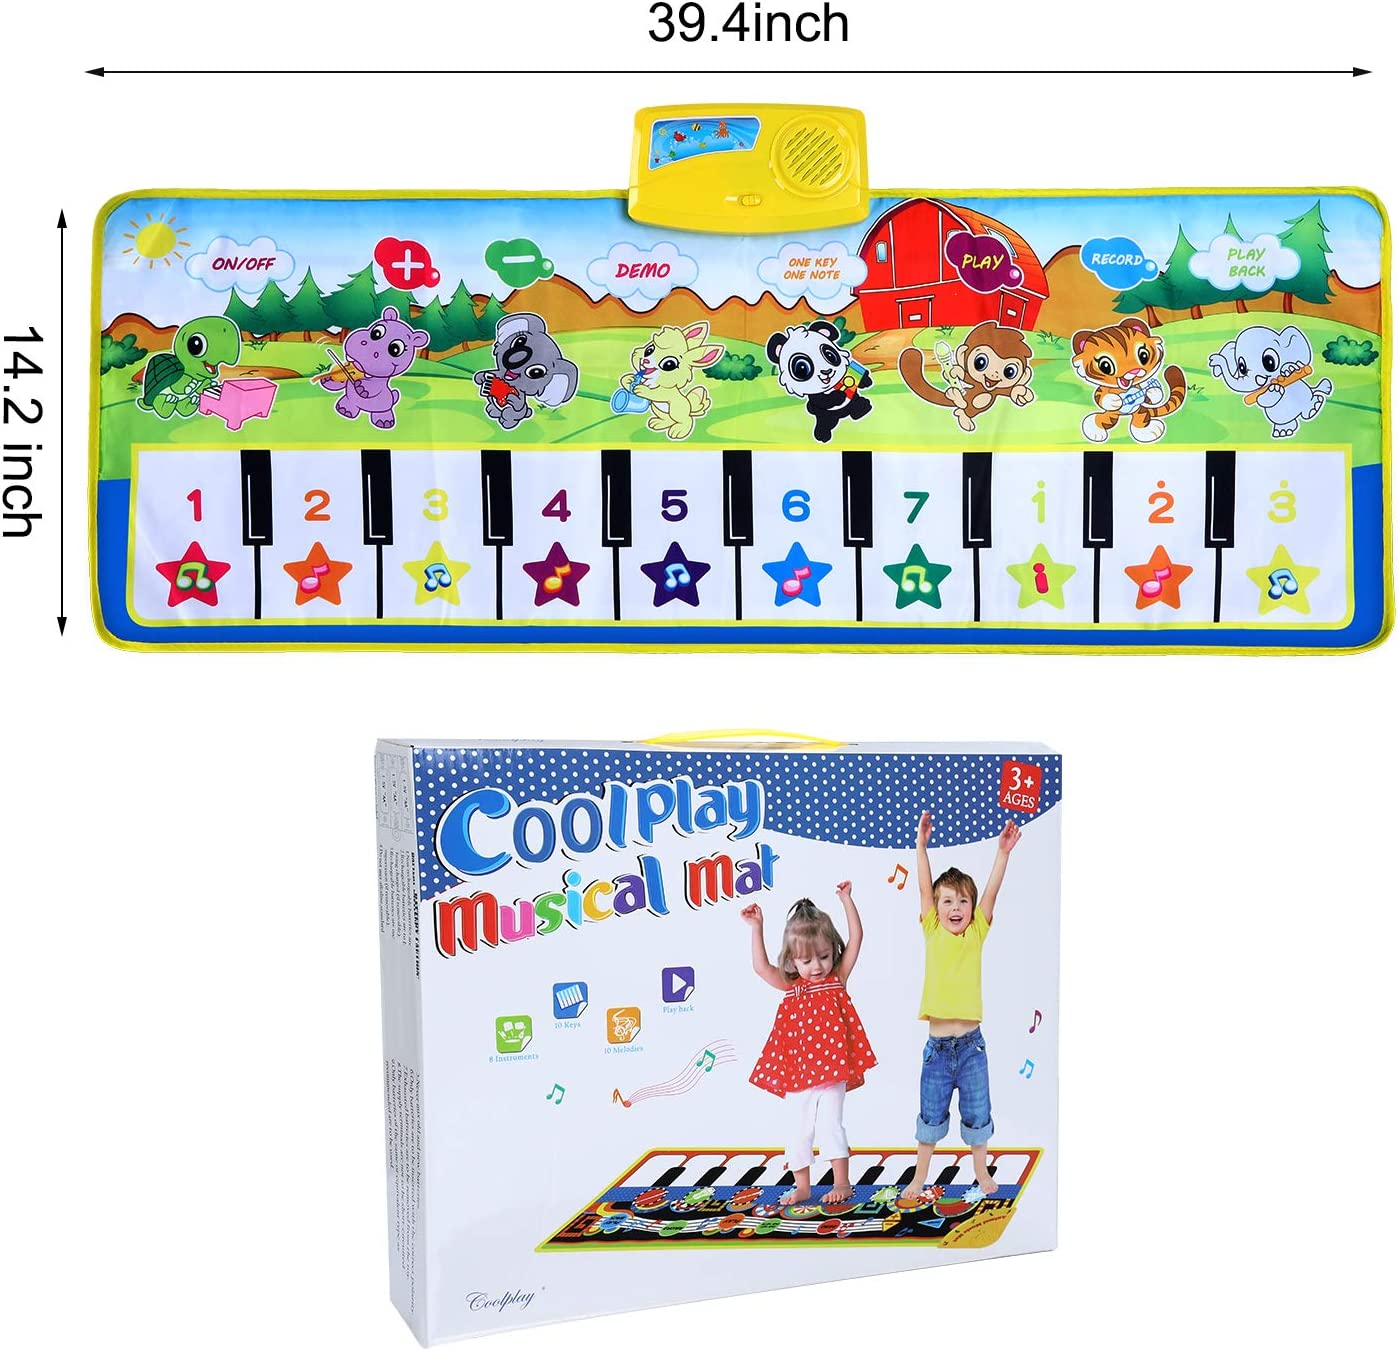 SUPTEMPO Keyboard Playmat Kids Musical Mats Portable/&Safe Musical Dance Mat Early Education Toys Gifts For Kids Toddler Girls Boys Christmas Music Piano Mat